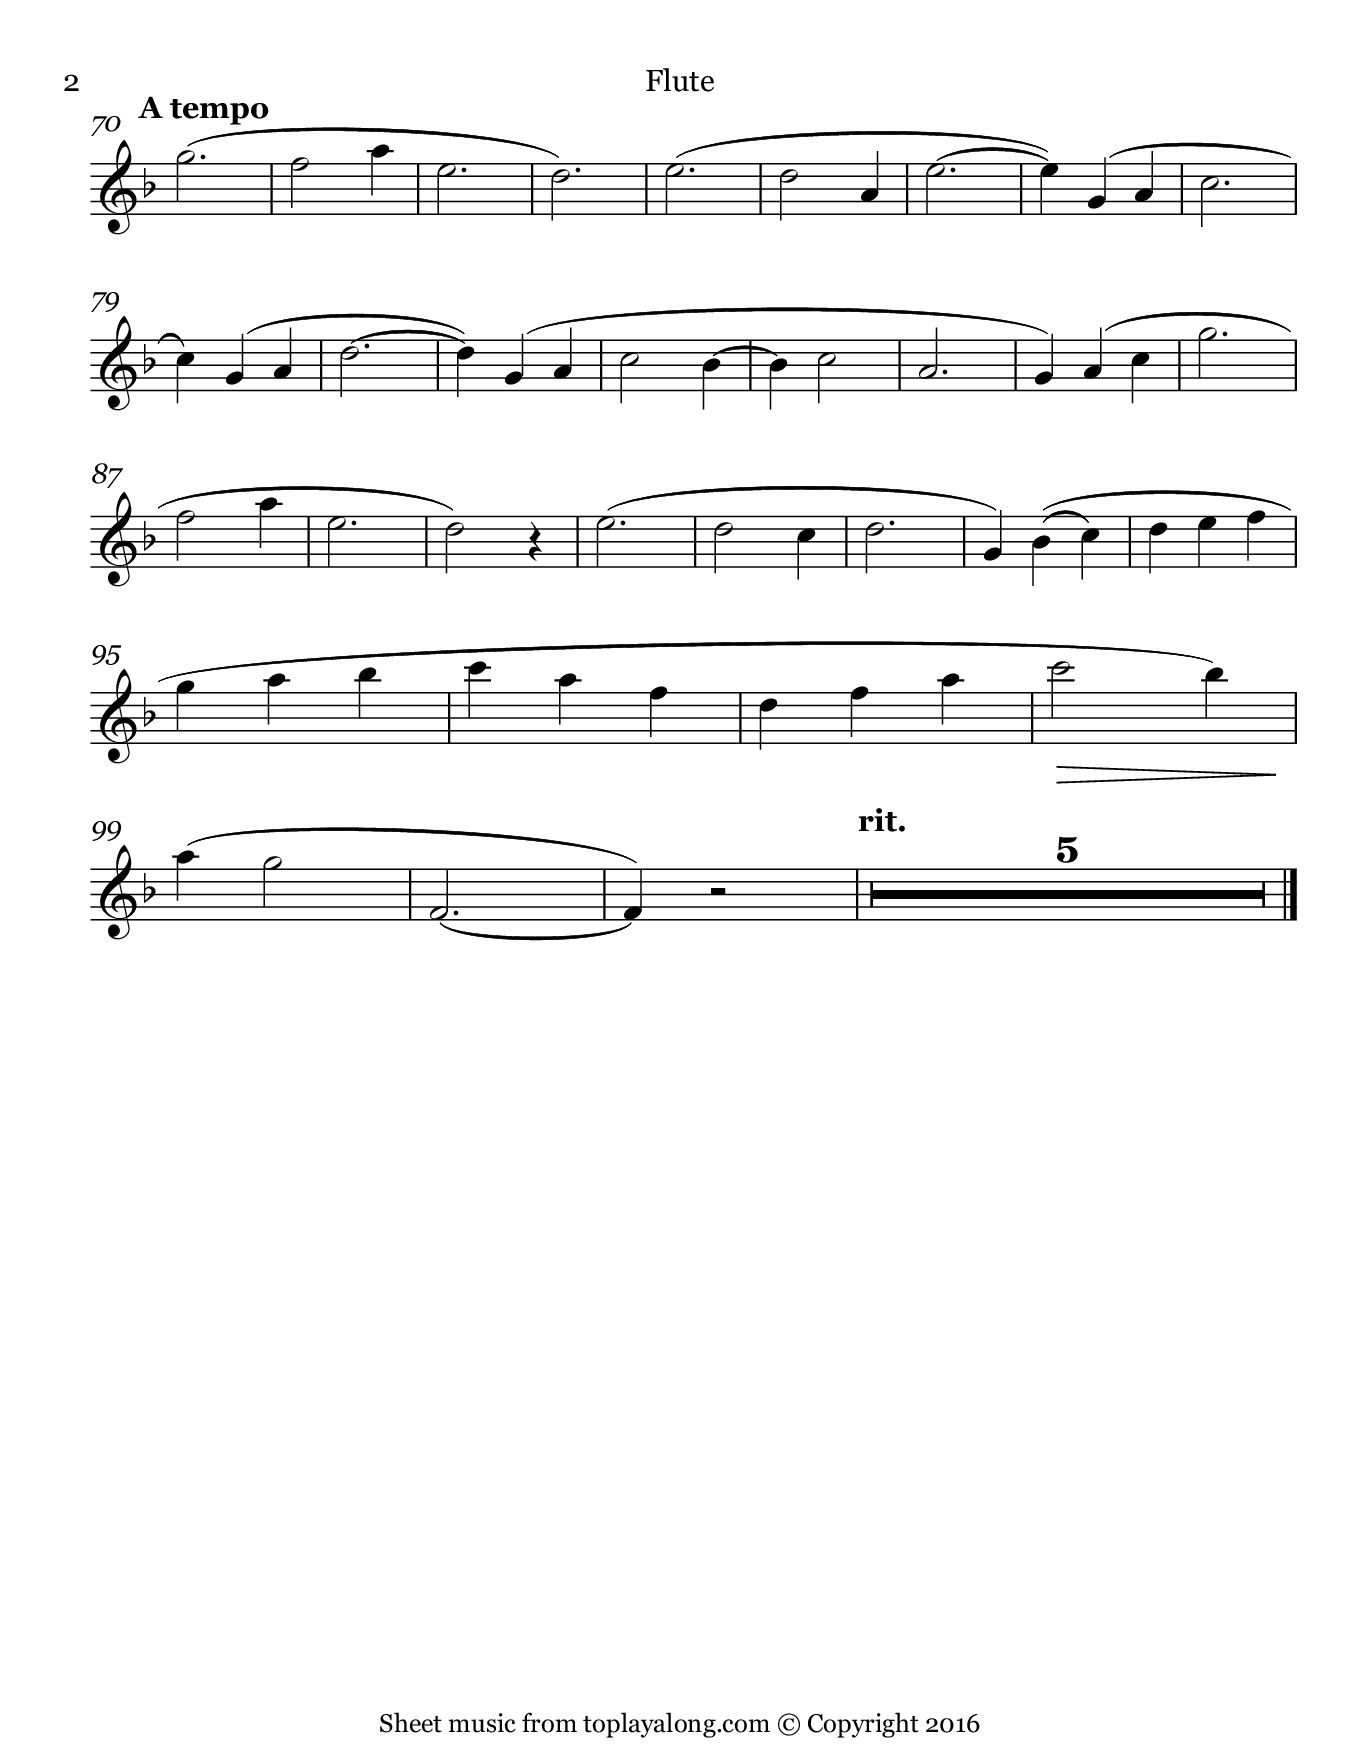 Je te veux by Satie. Sheet music for Flute, page 2.